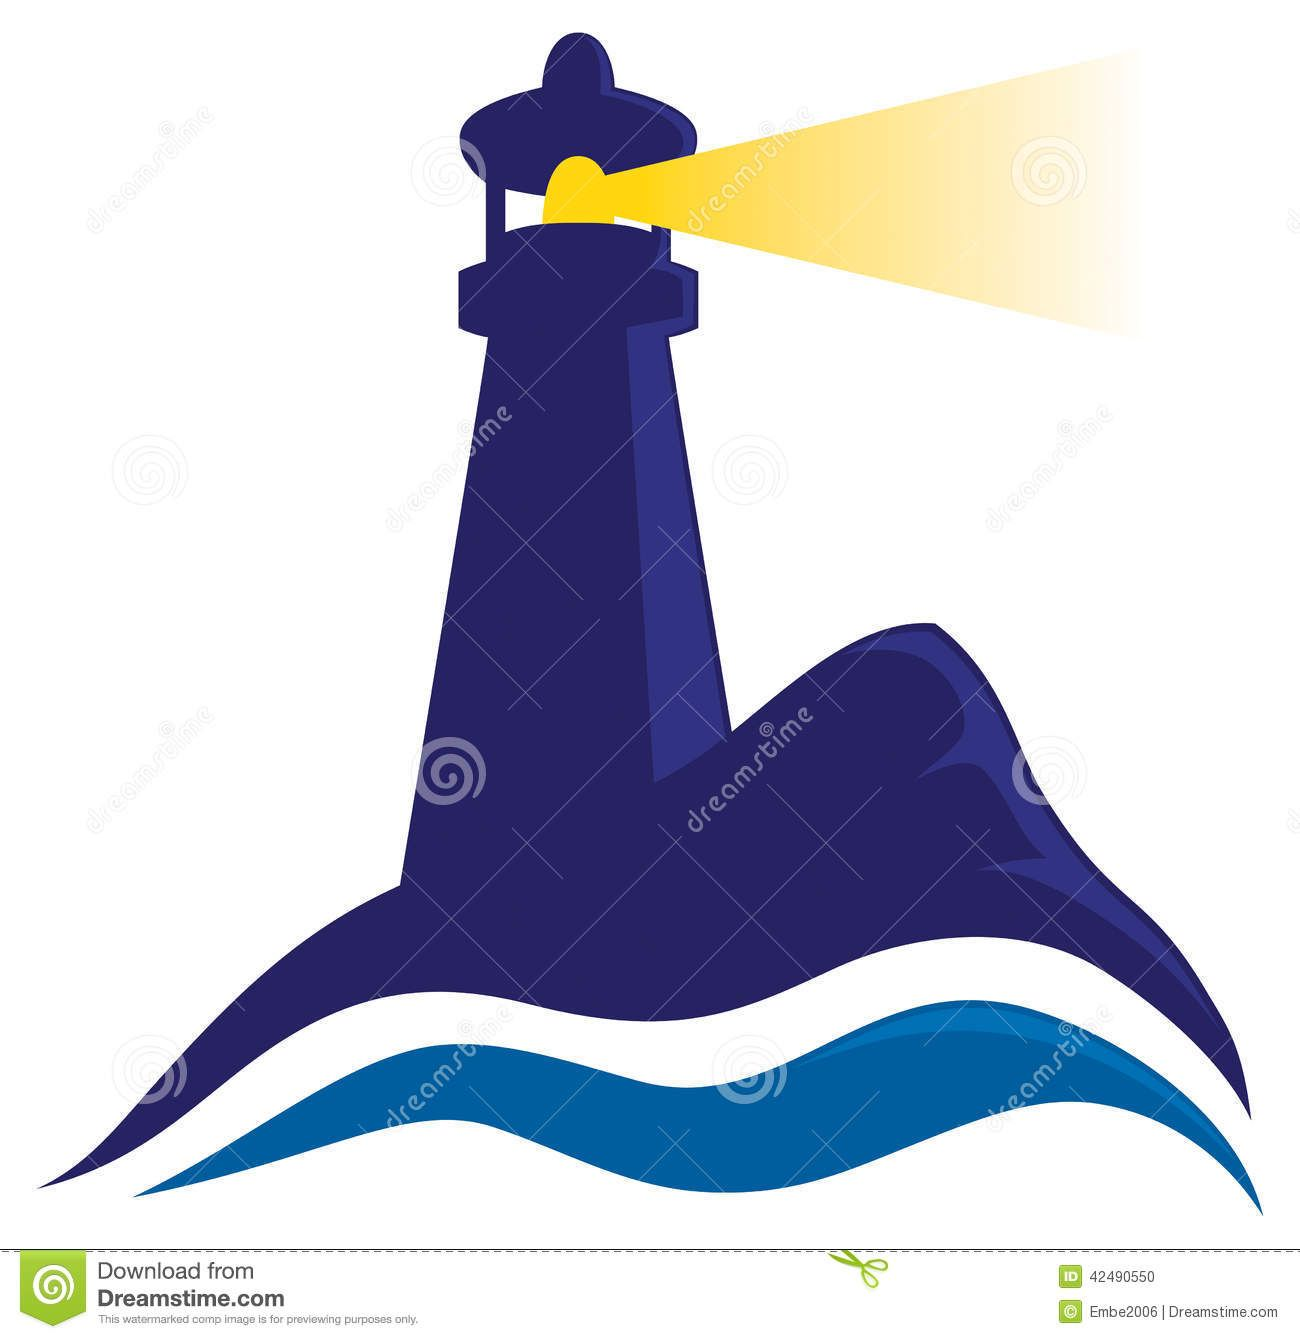 Lighthouse clipart. Logo showing lighthouseclipartlighthouselogoshowingshiningitslight